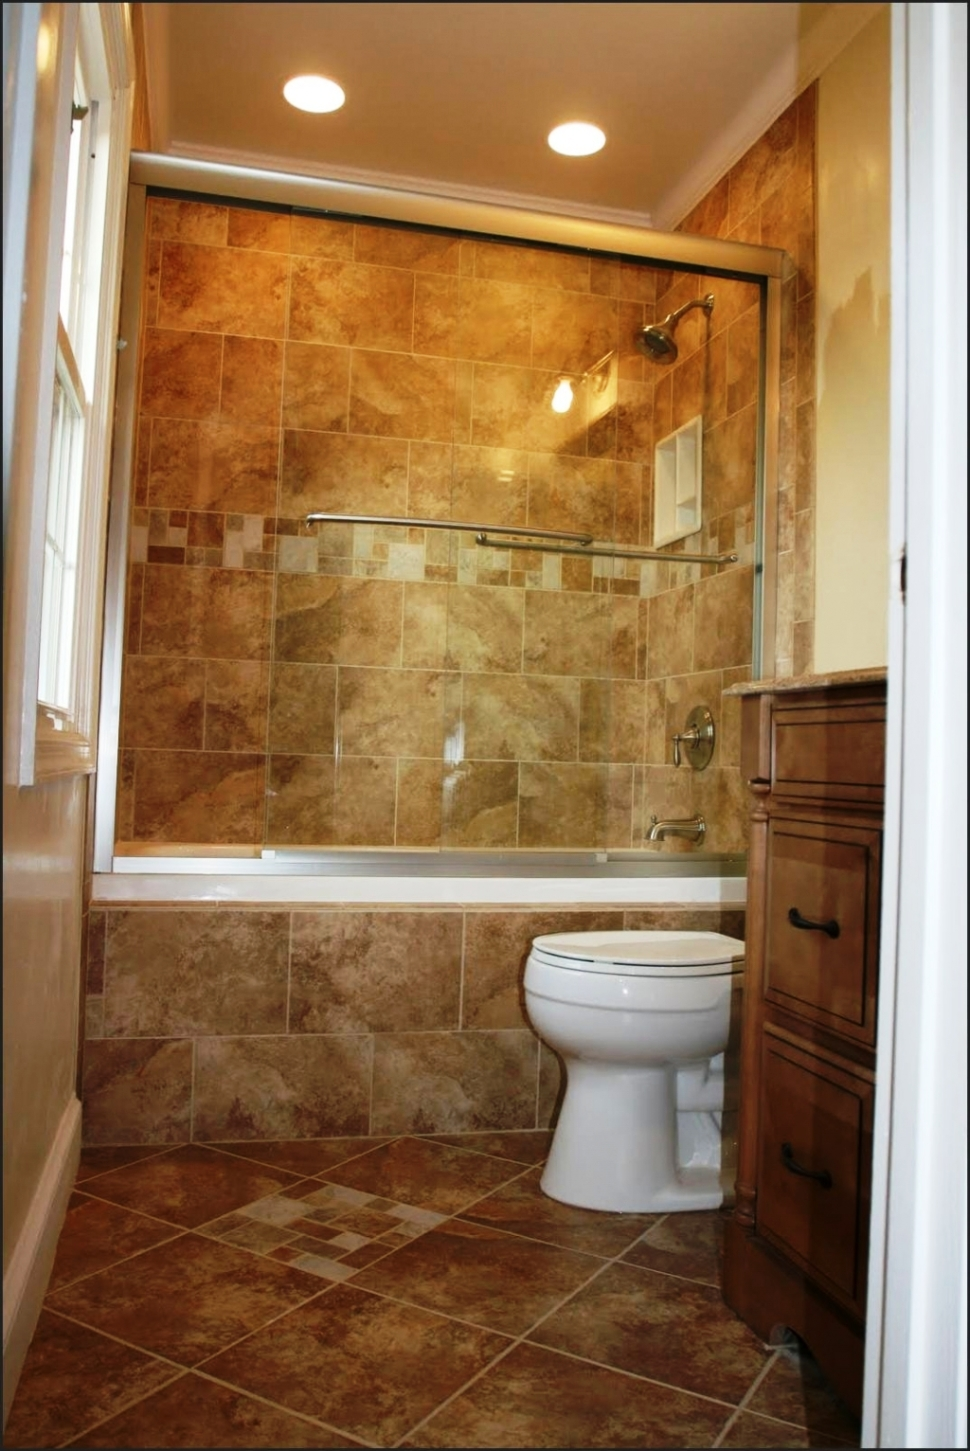 37 great ideas and pictures of modern small bathroom tiles Small bathroom remodel tile